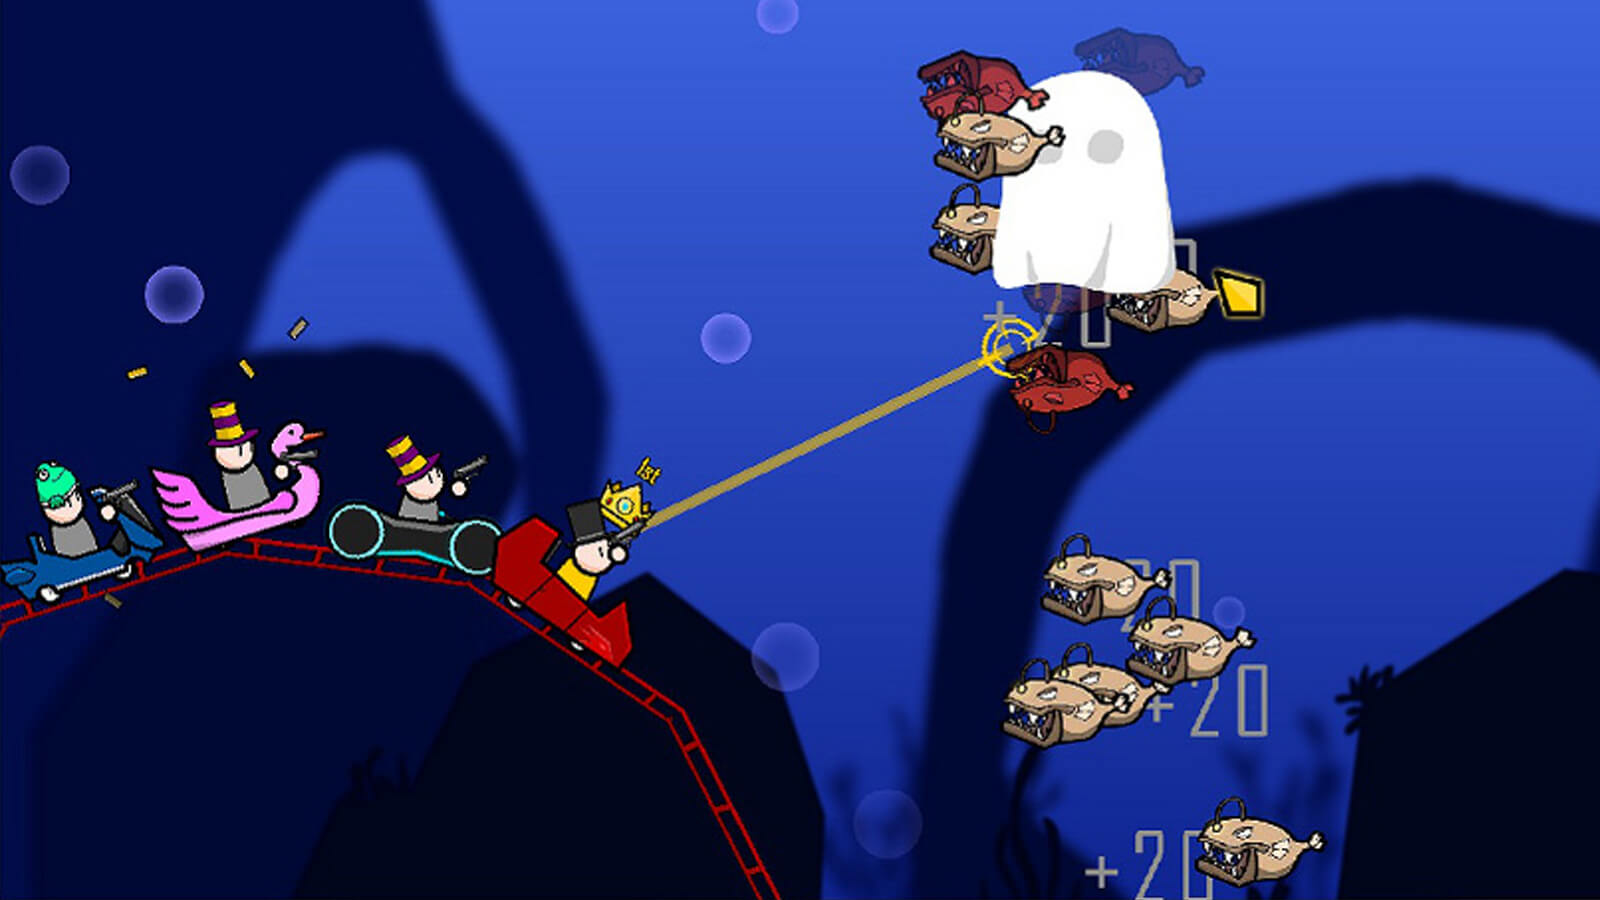 The roller coaster goes through an underwater level as the players aim at incoming fish enemies